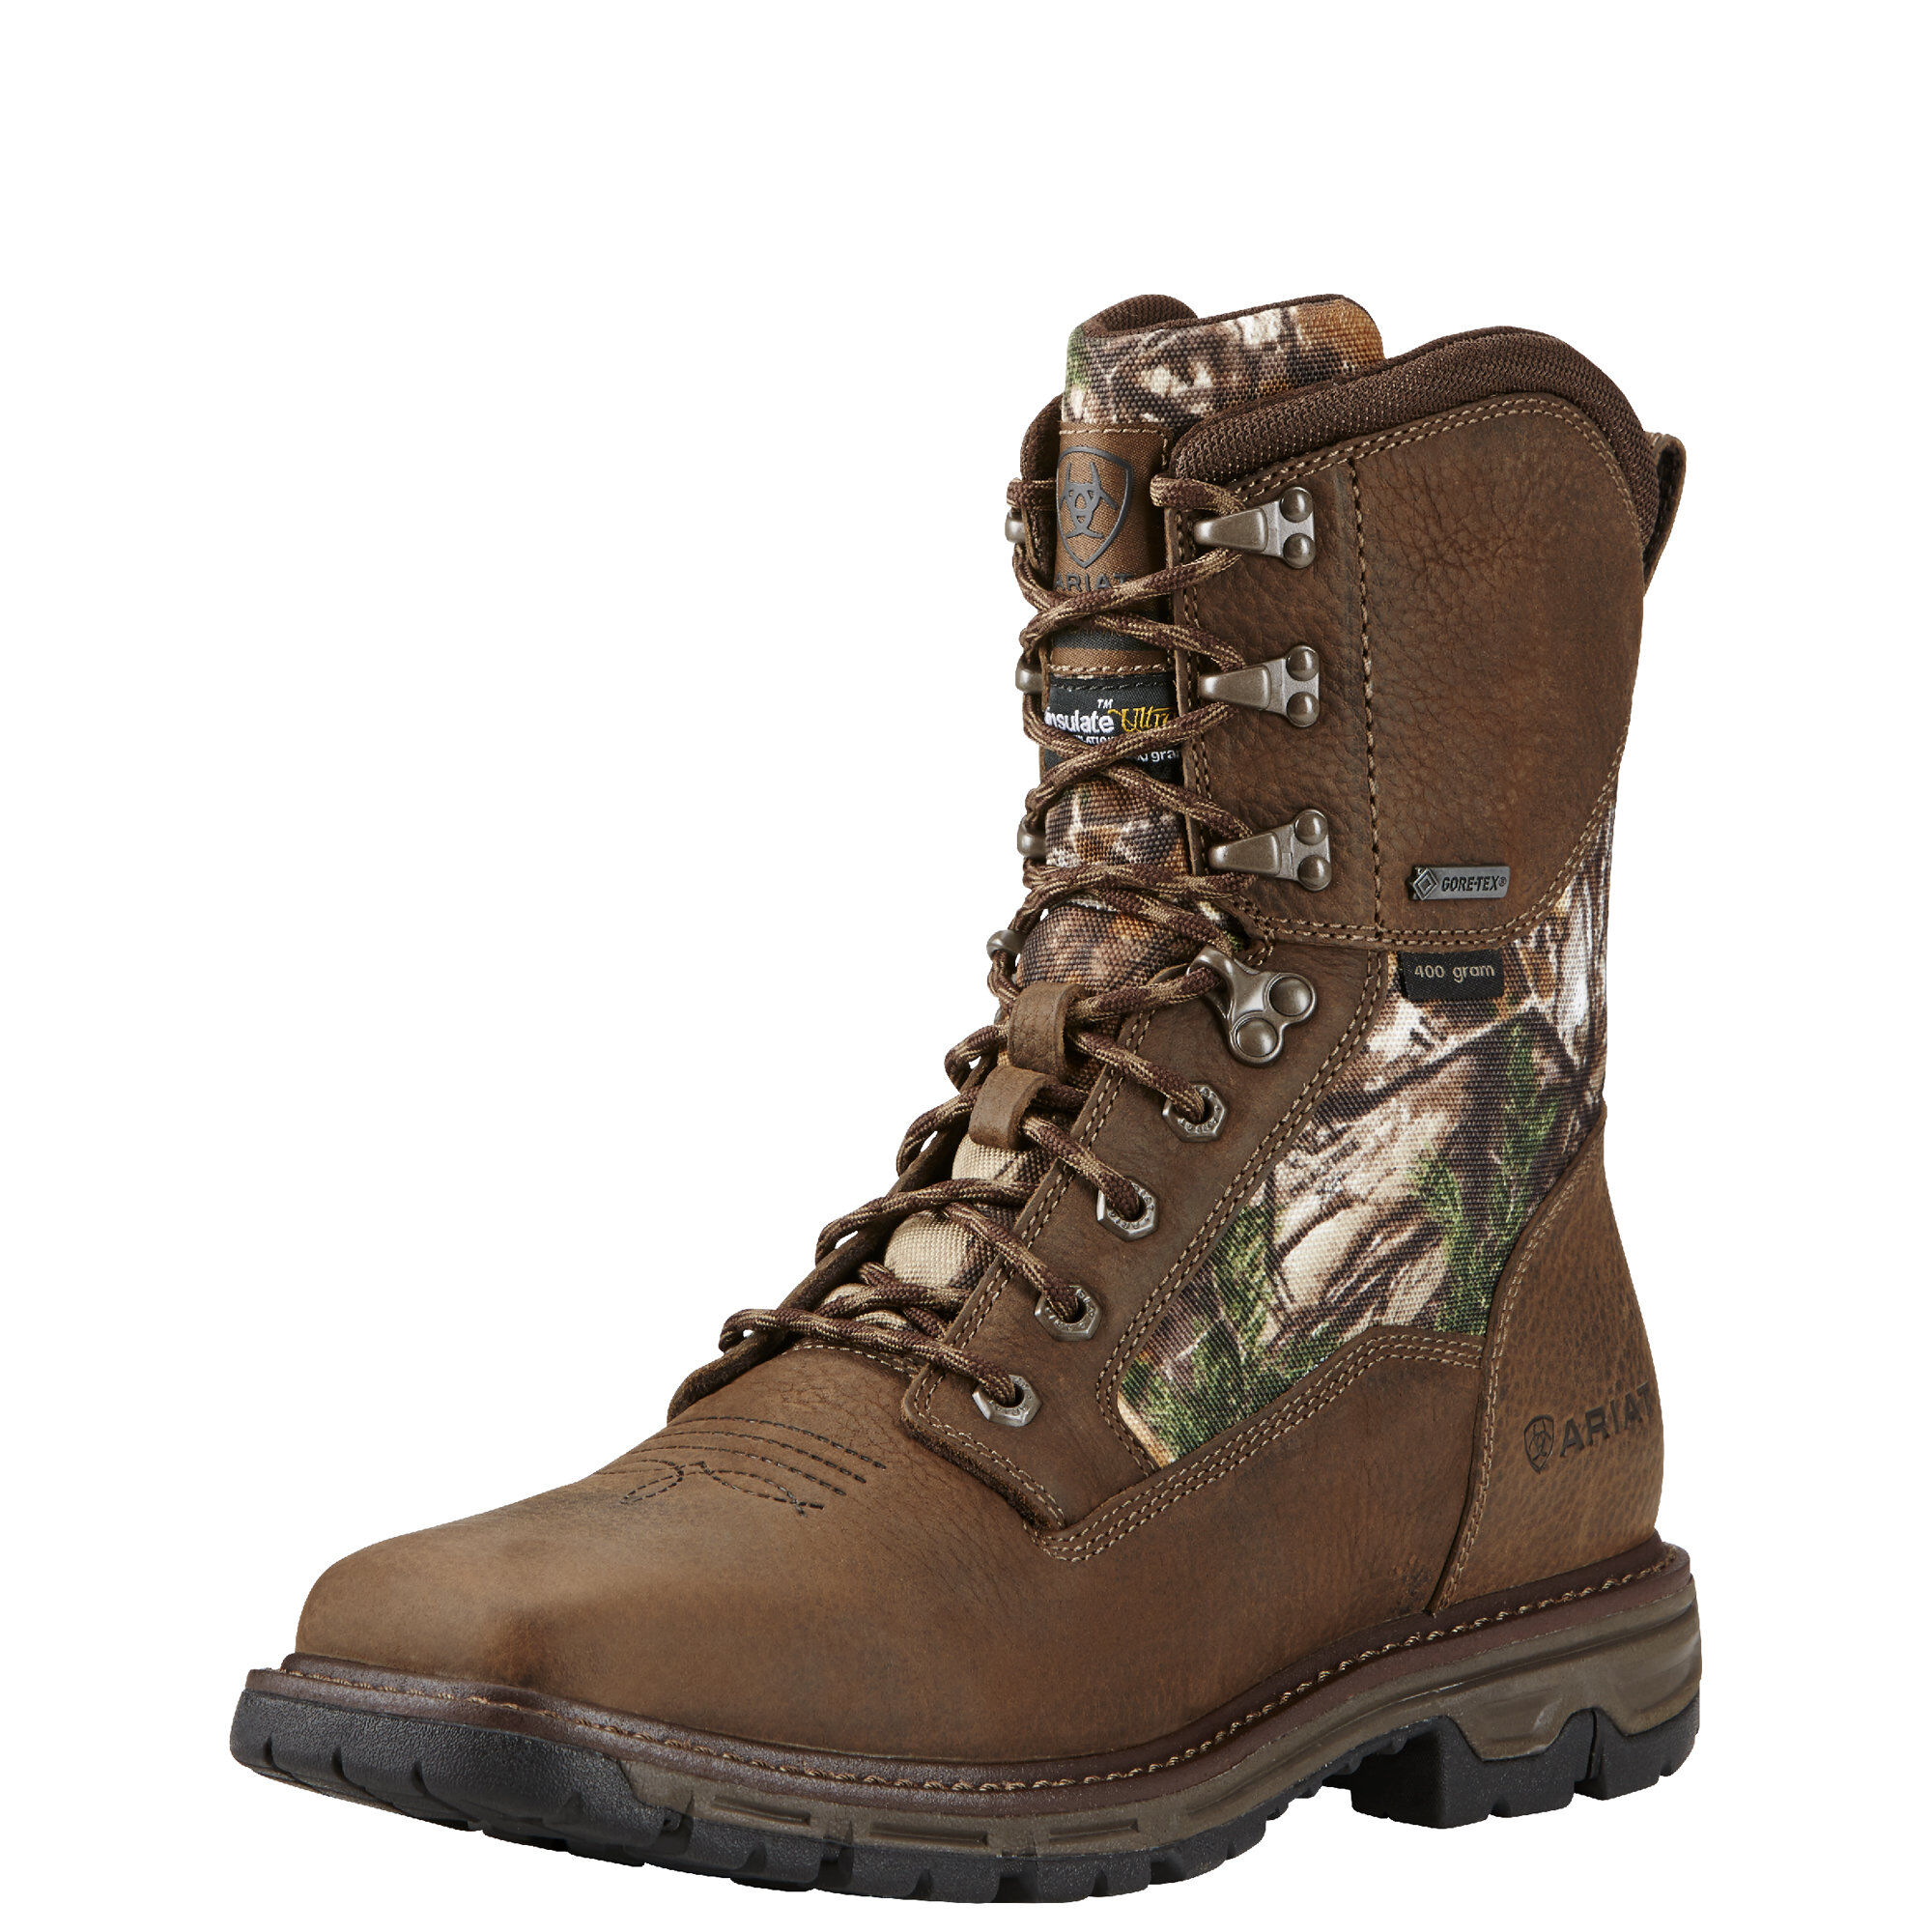 "Conquest 8"" Gore-Tex 400g Hunting Boot"